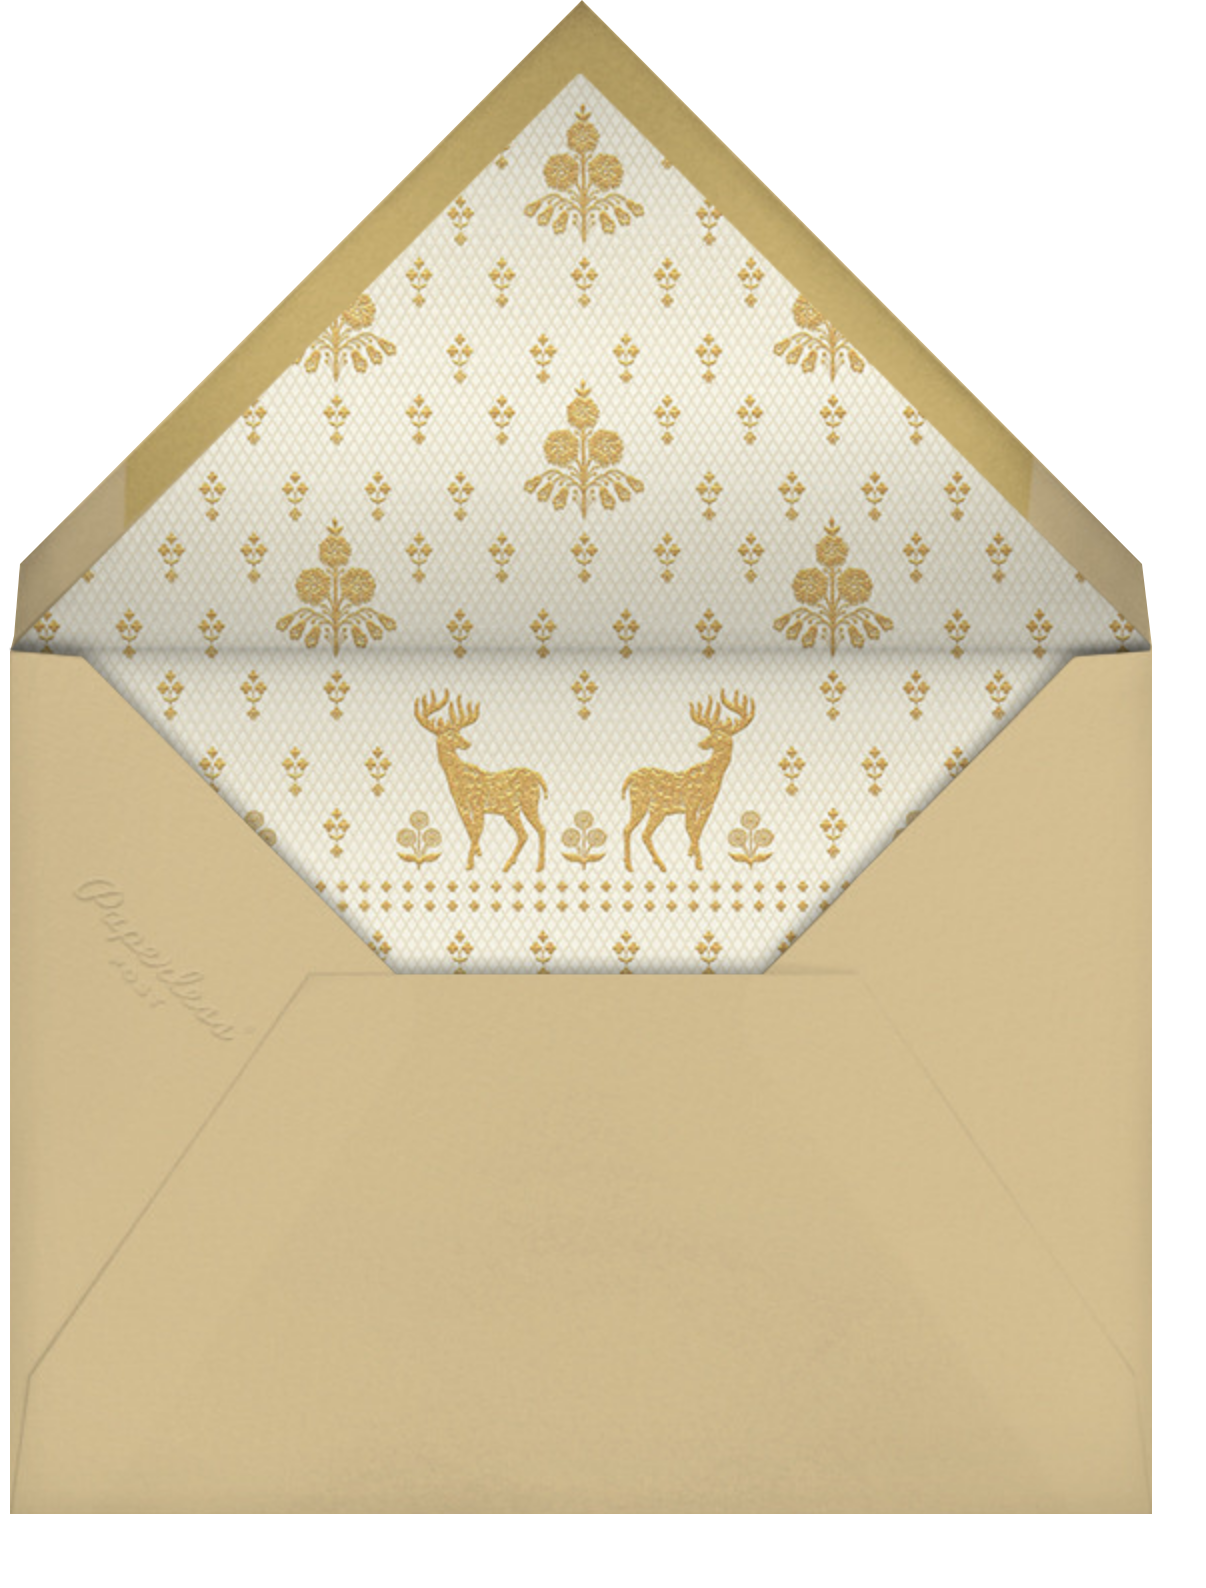 Aashna (Invitation) - Raw Silk - Anita Dongre - Indian - envelope back